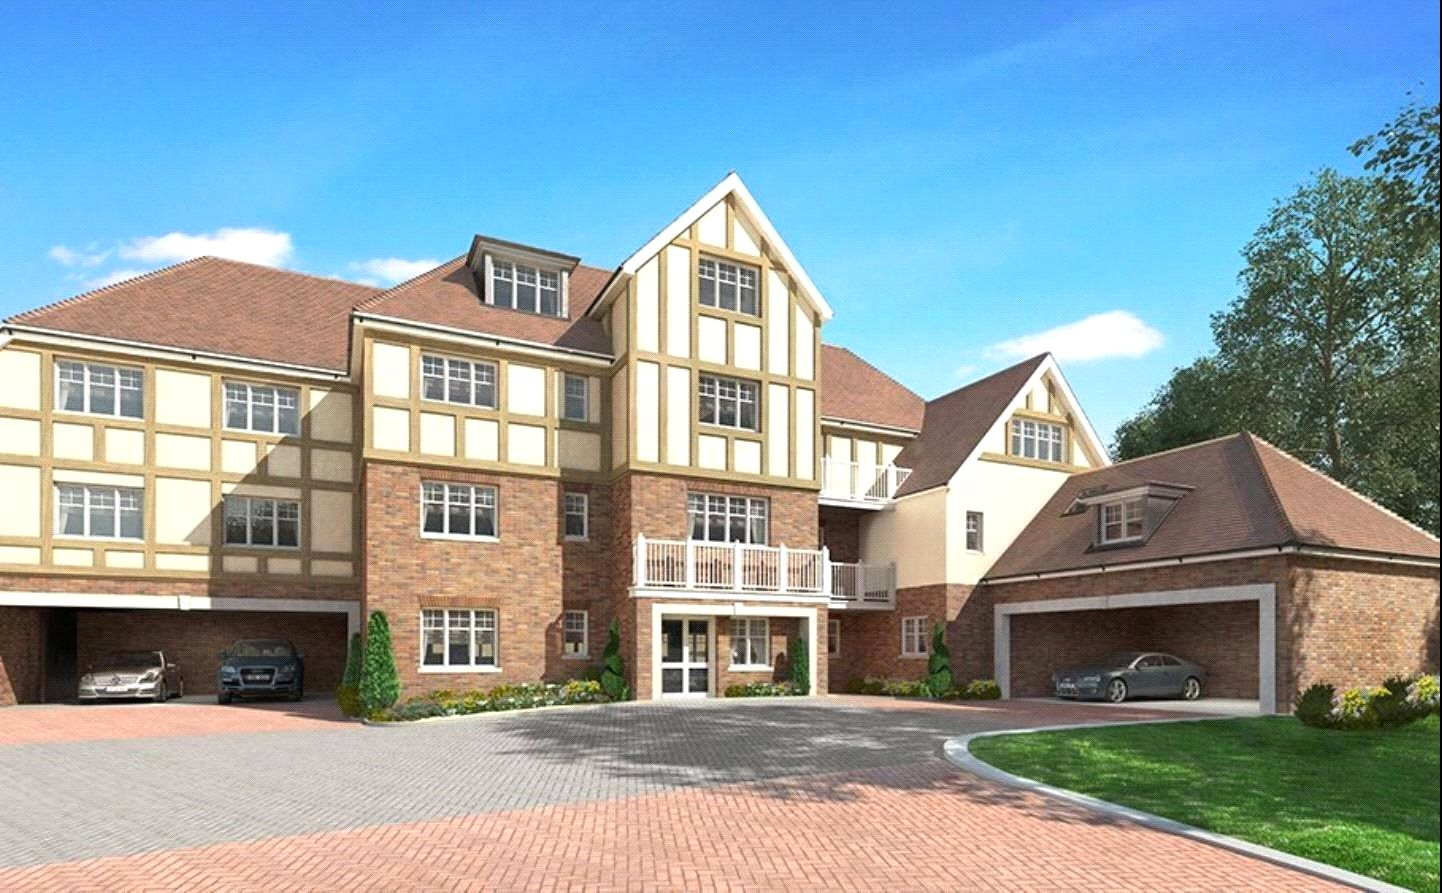 集合住宅 のために 売買 アット High Peak, London Road, Sunningdale, Berkshire, SL5 Sunningdale, イギリス